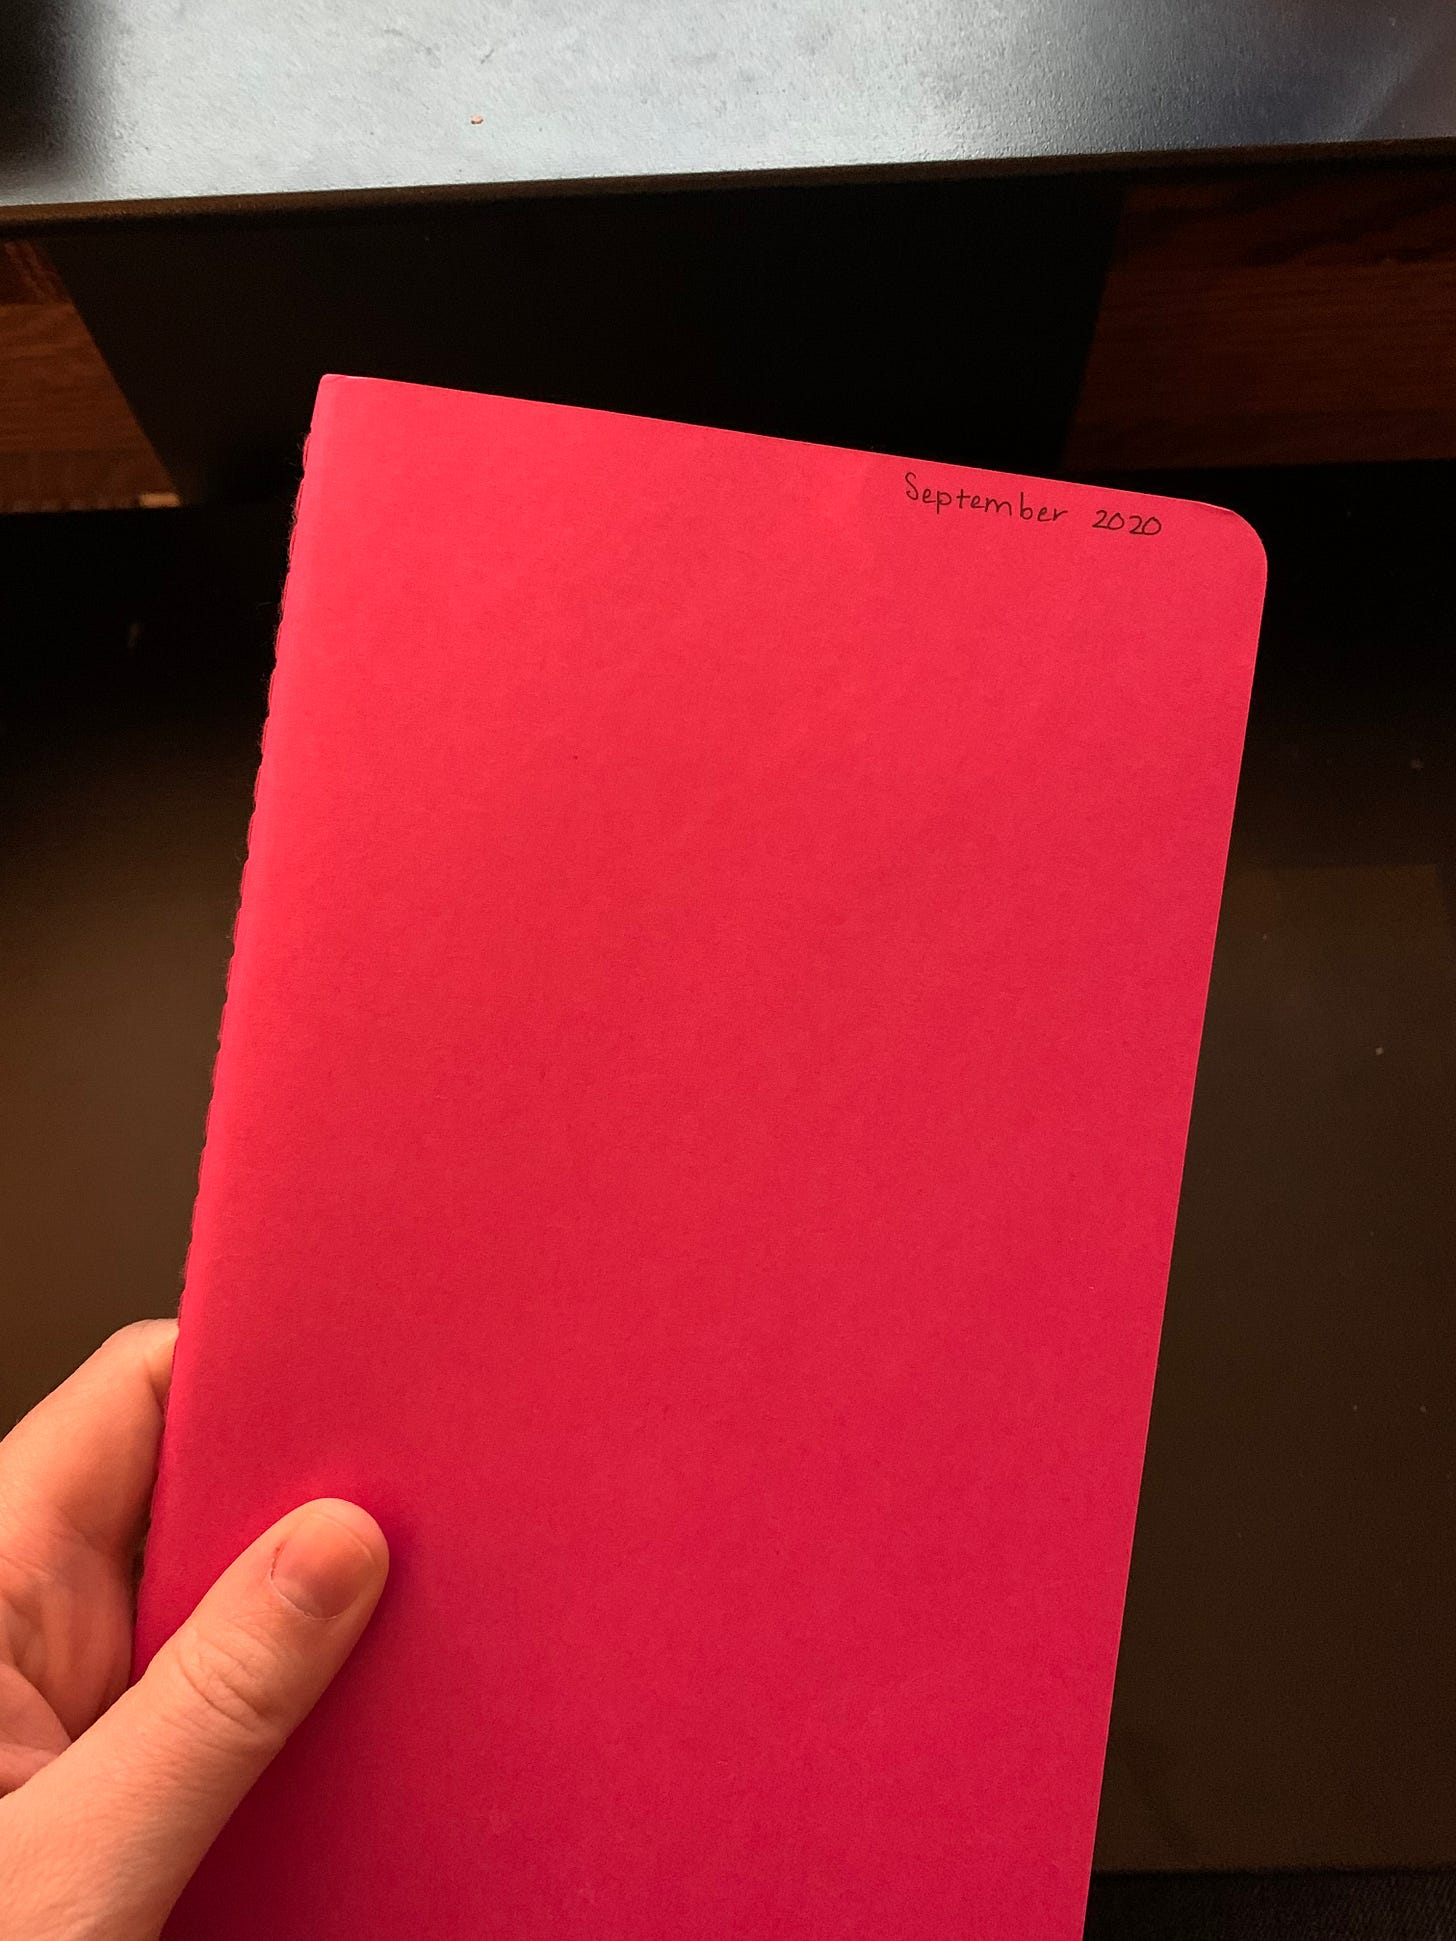 Photo of a pink notebook